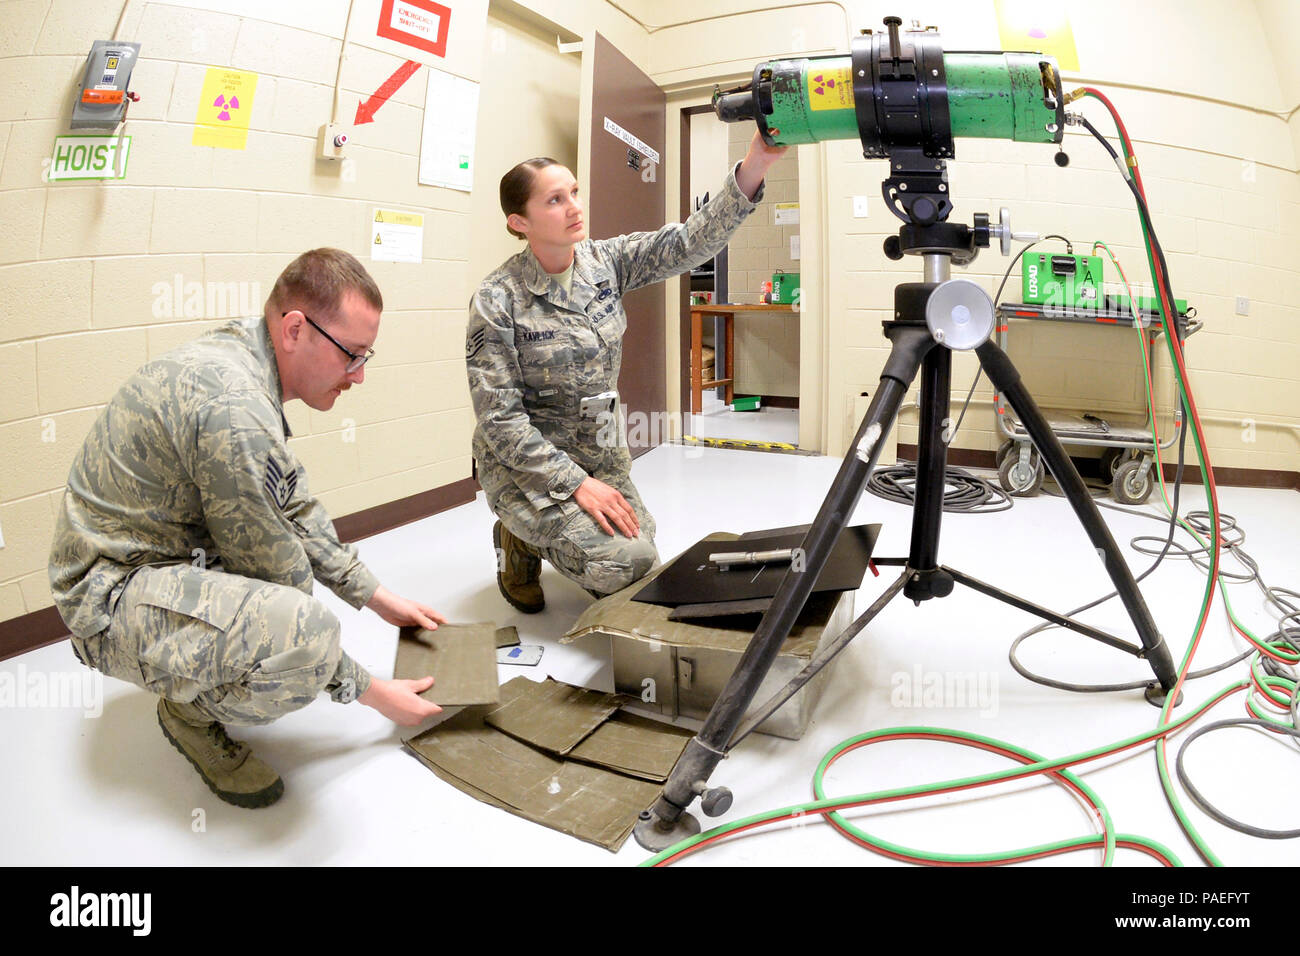 Staff Sgts. Joshua Batman and Cinnamon Kavlick, both assigned to the 388th Equipment Maintenance Squadron, prepare a tube head, lead screens, and digital back to scan a weld certification March 25 in their Nondestructive Inspection laboratory at Hill Air Force Base, Utah. The 388th EMS NDI lab recently upgraded its radiography equipment with digital capabilities, which will save time and money while creating a healthier work environment and eliminating hazardous wastes. (U.S. Air Force photo by Todd Cromar) - Stock Image